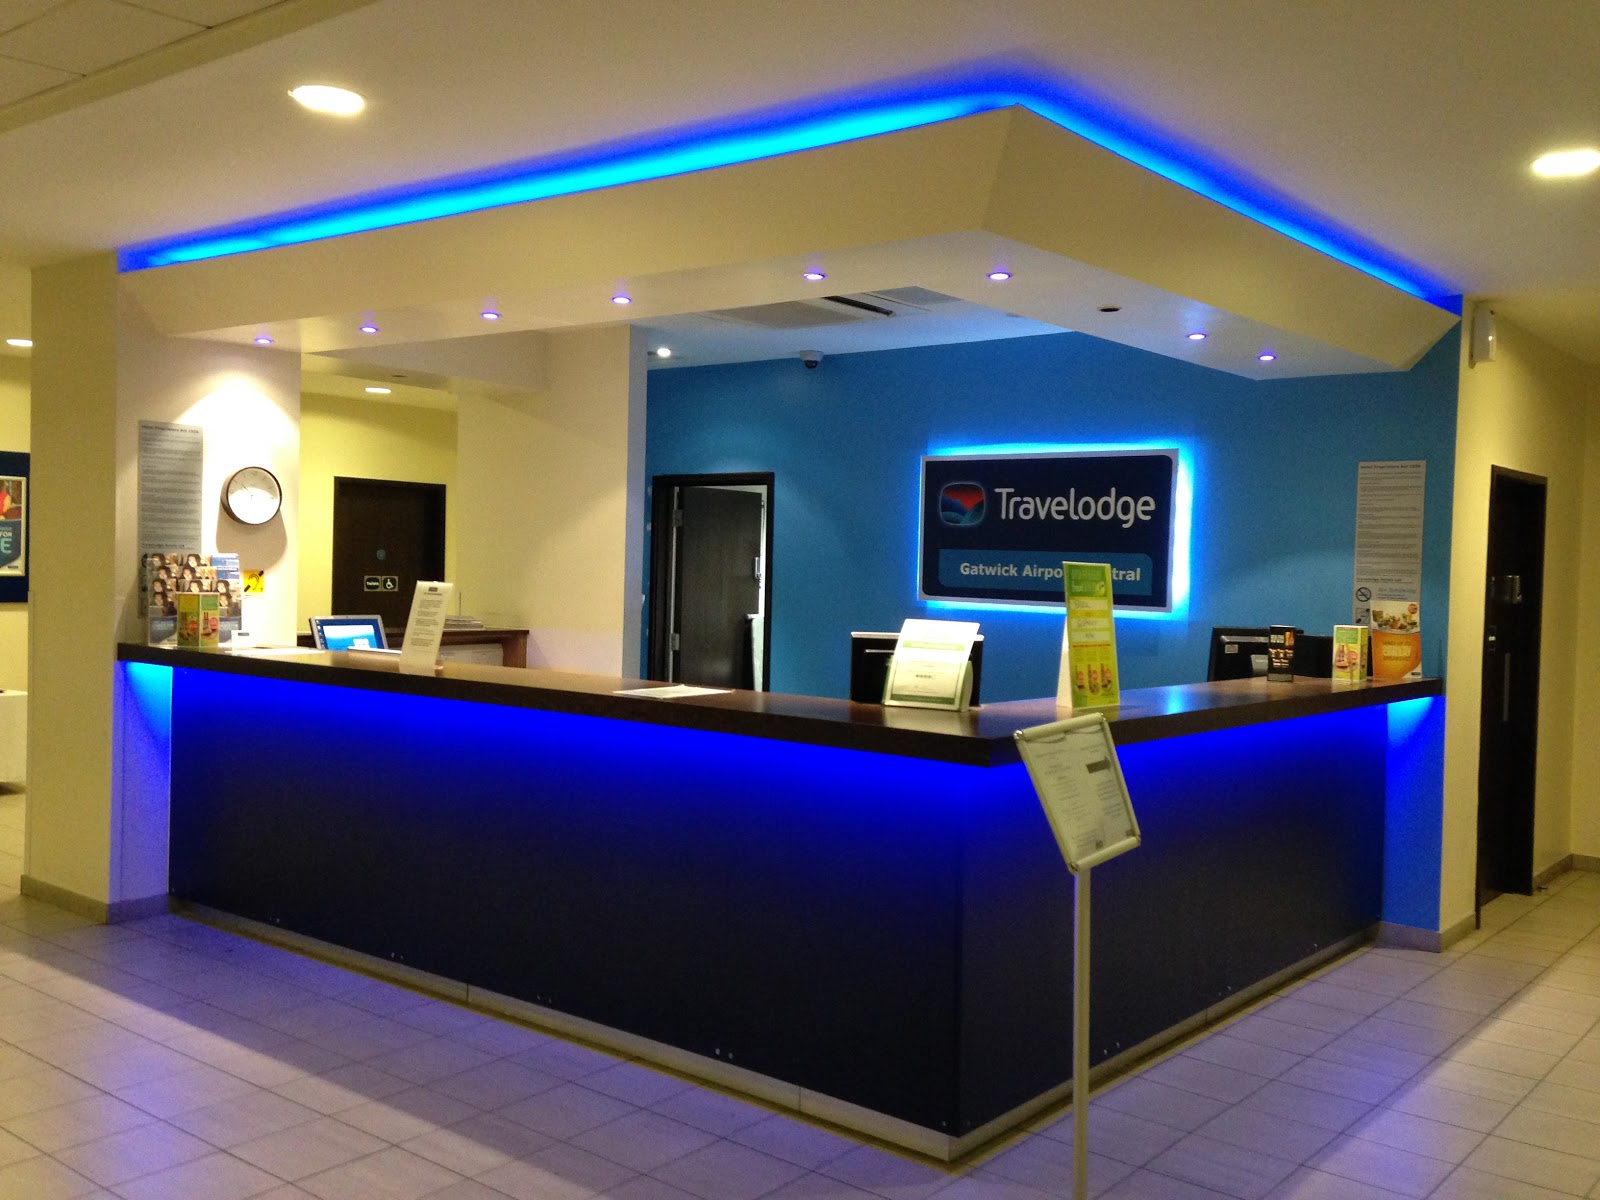 Gatwick travelodge stay park & fly review